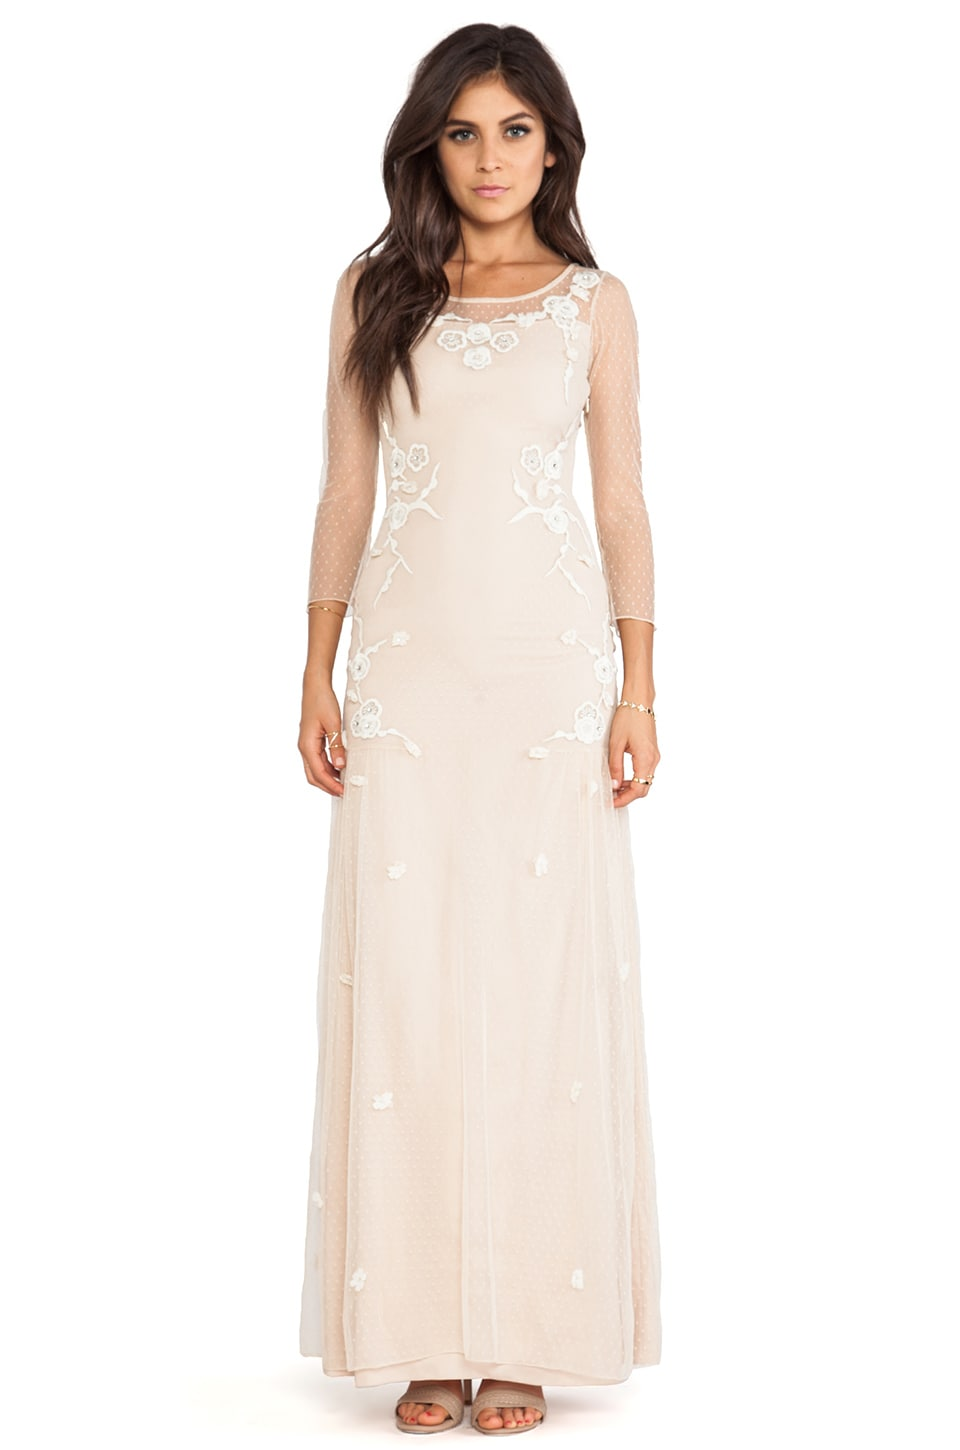 Alice by Temperley Cherry Blossom Long Dress in Stone/Ivory